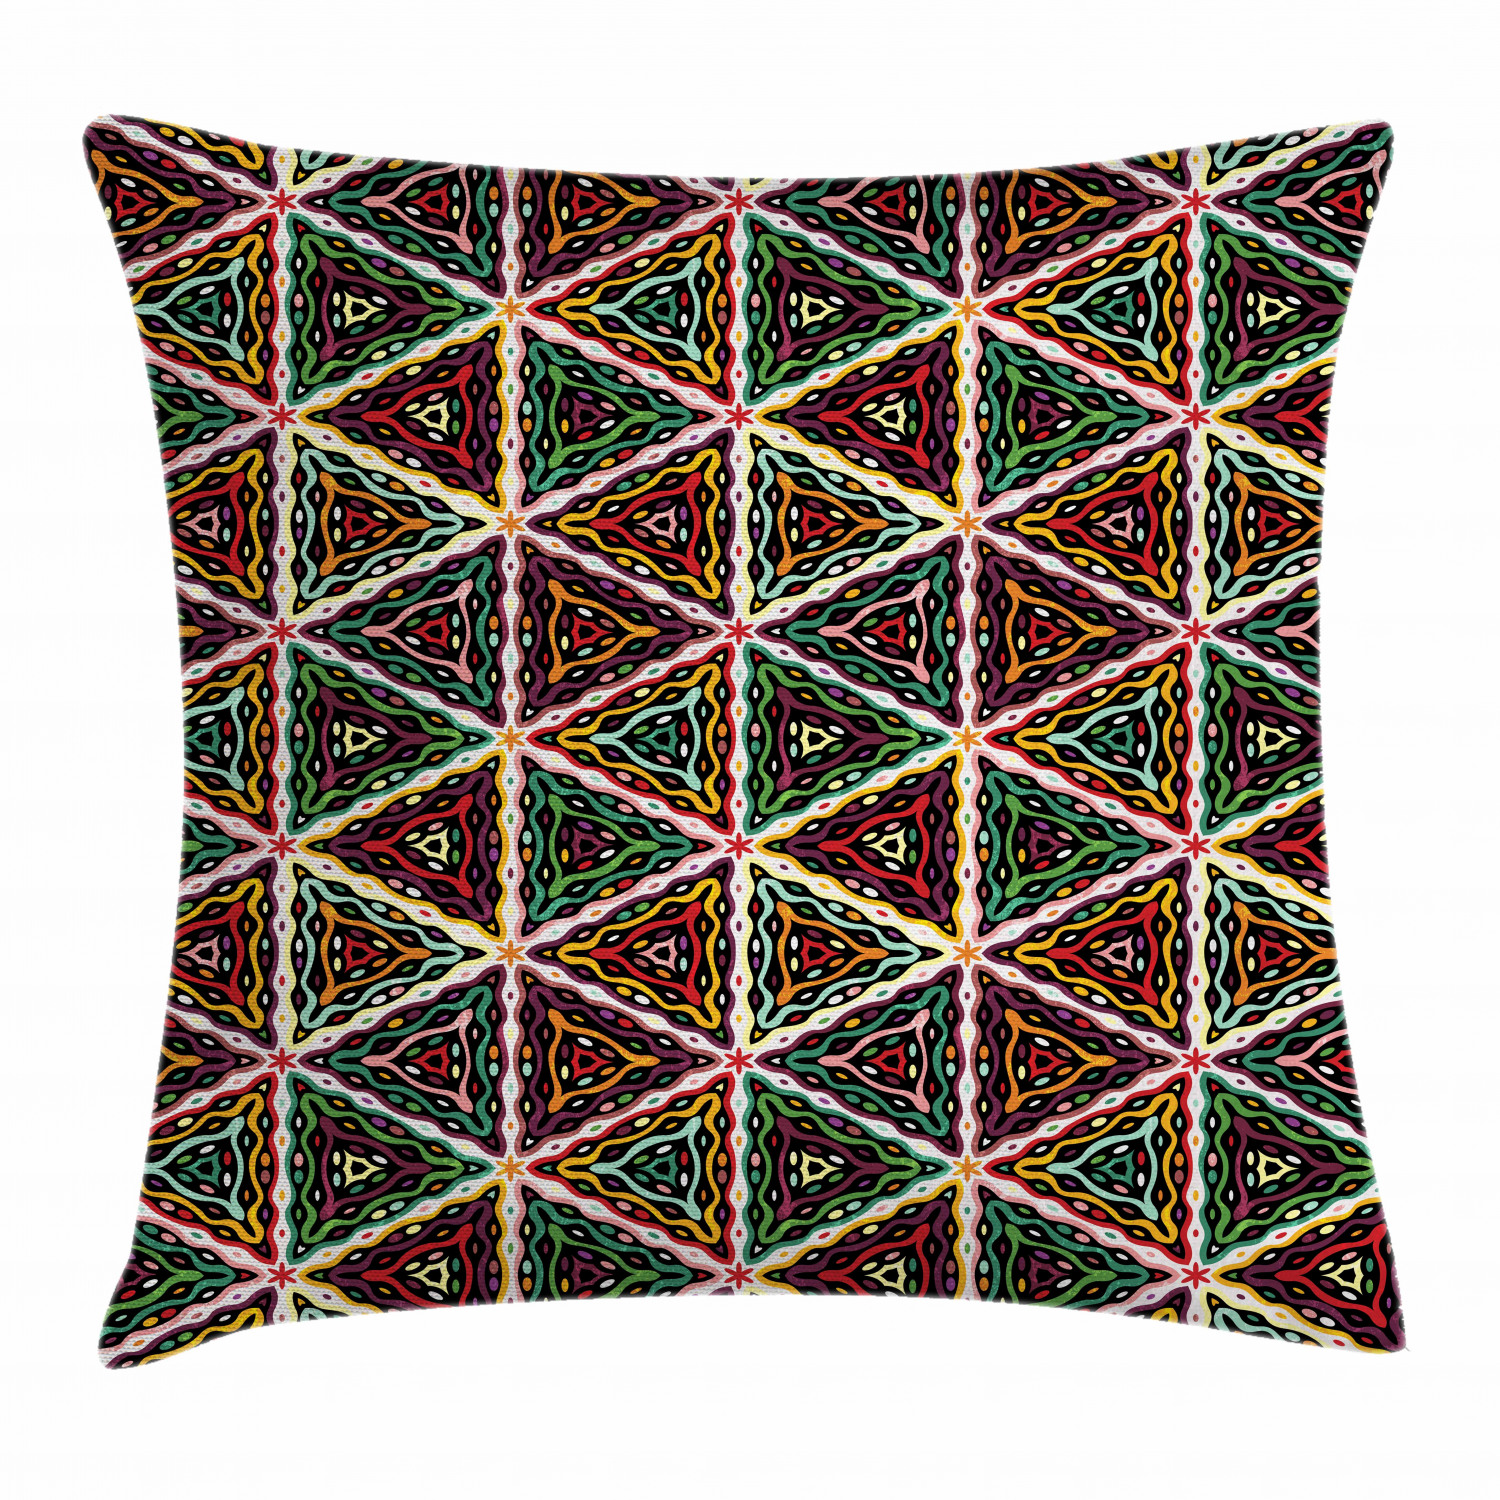 African Throw Pillow Cushion Cover, Grunge Triangle Design